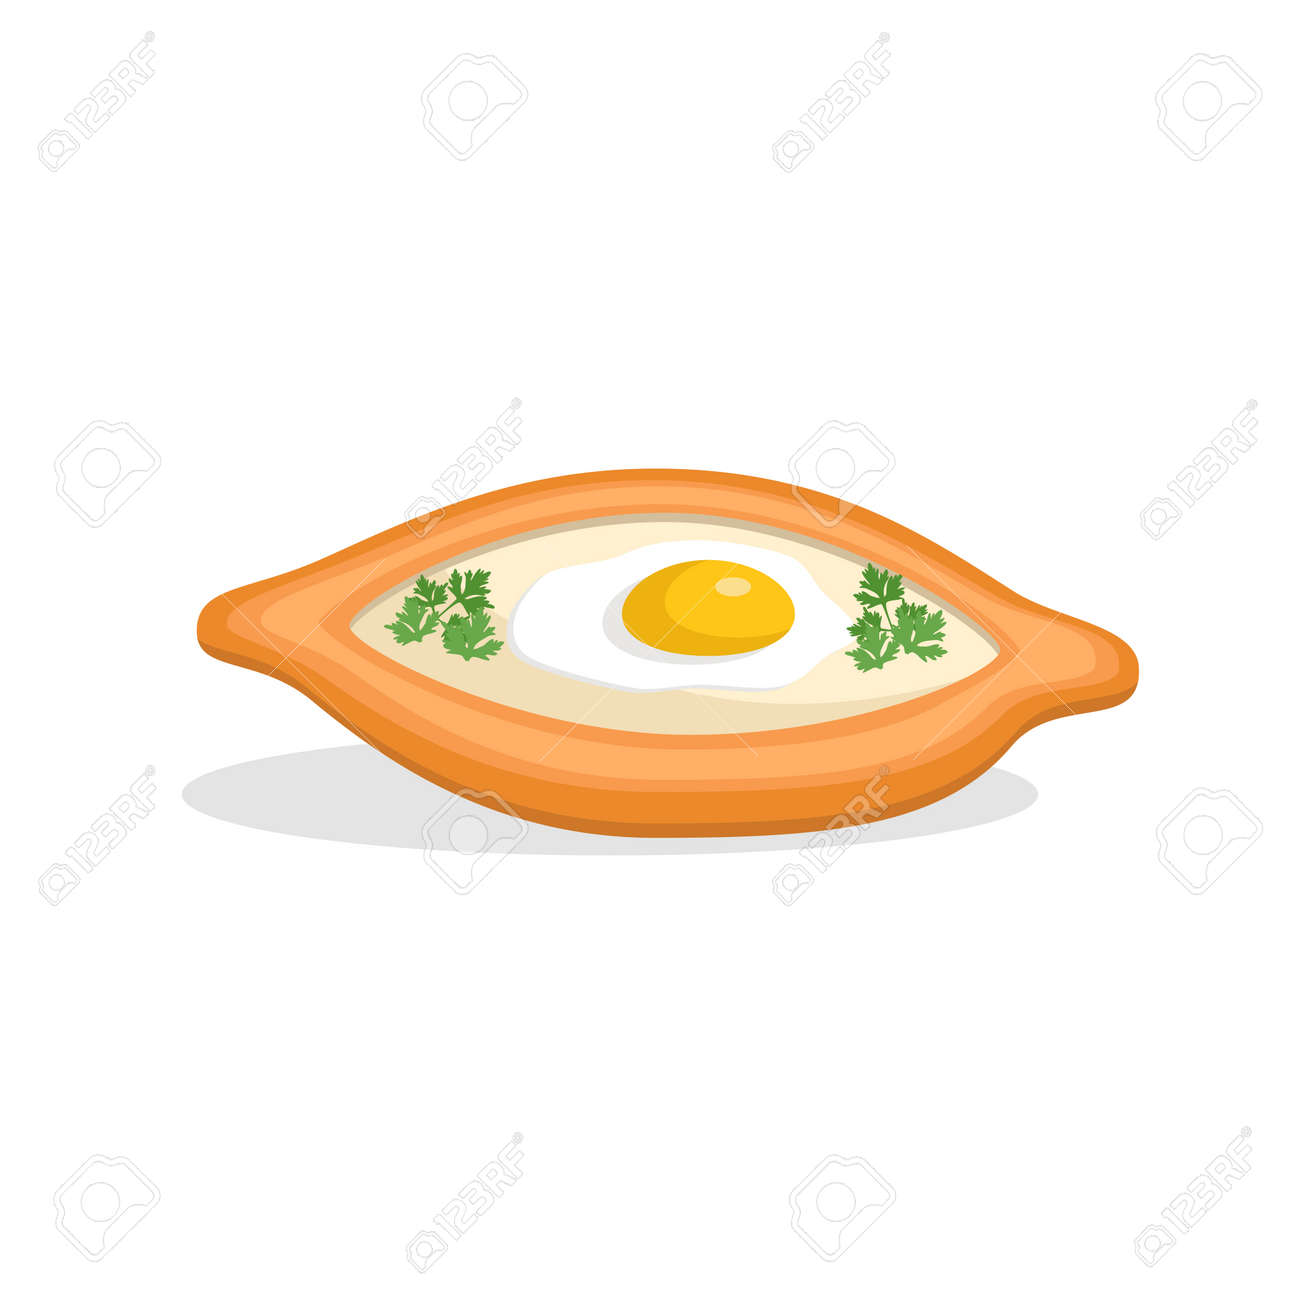 Traditional ajarian and georgian dish - khachapuri. Freshly baked flat bread filled with cheese and egg, leaves of parsley on top, isolated on white background. Vector hand drawn illustration. - 128881450